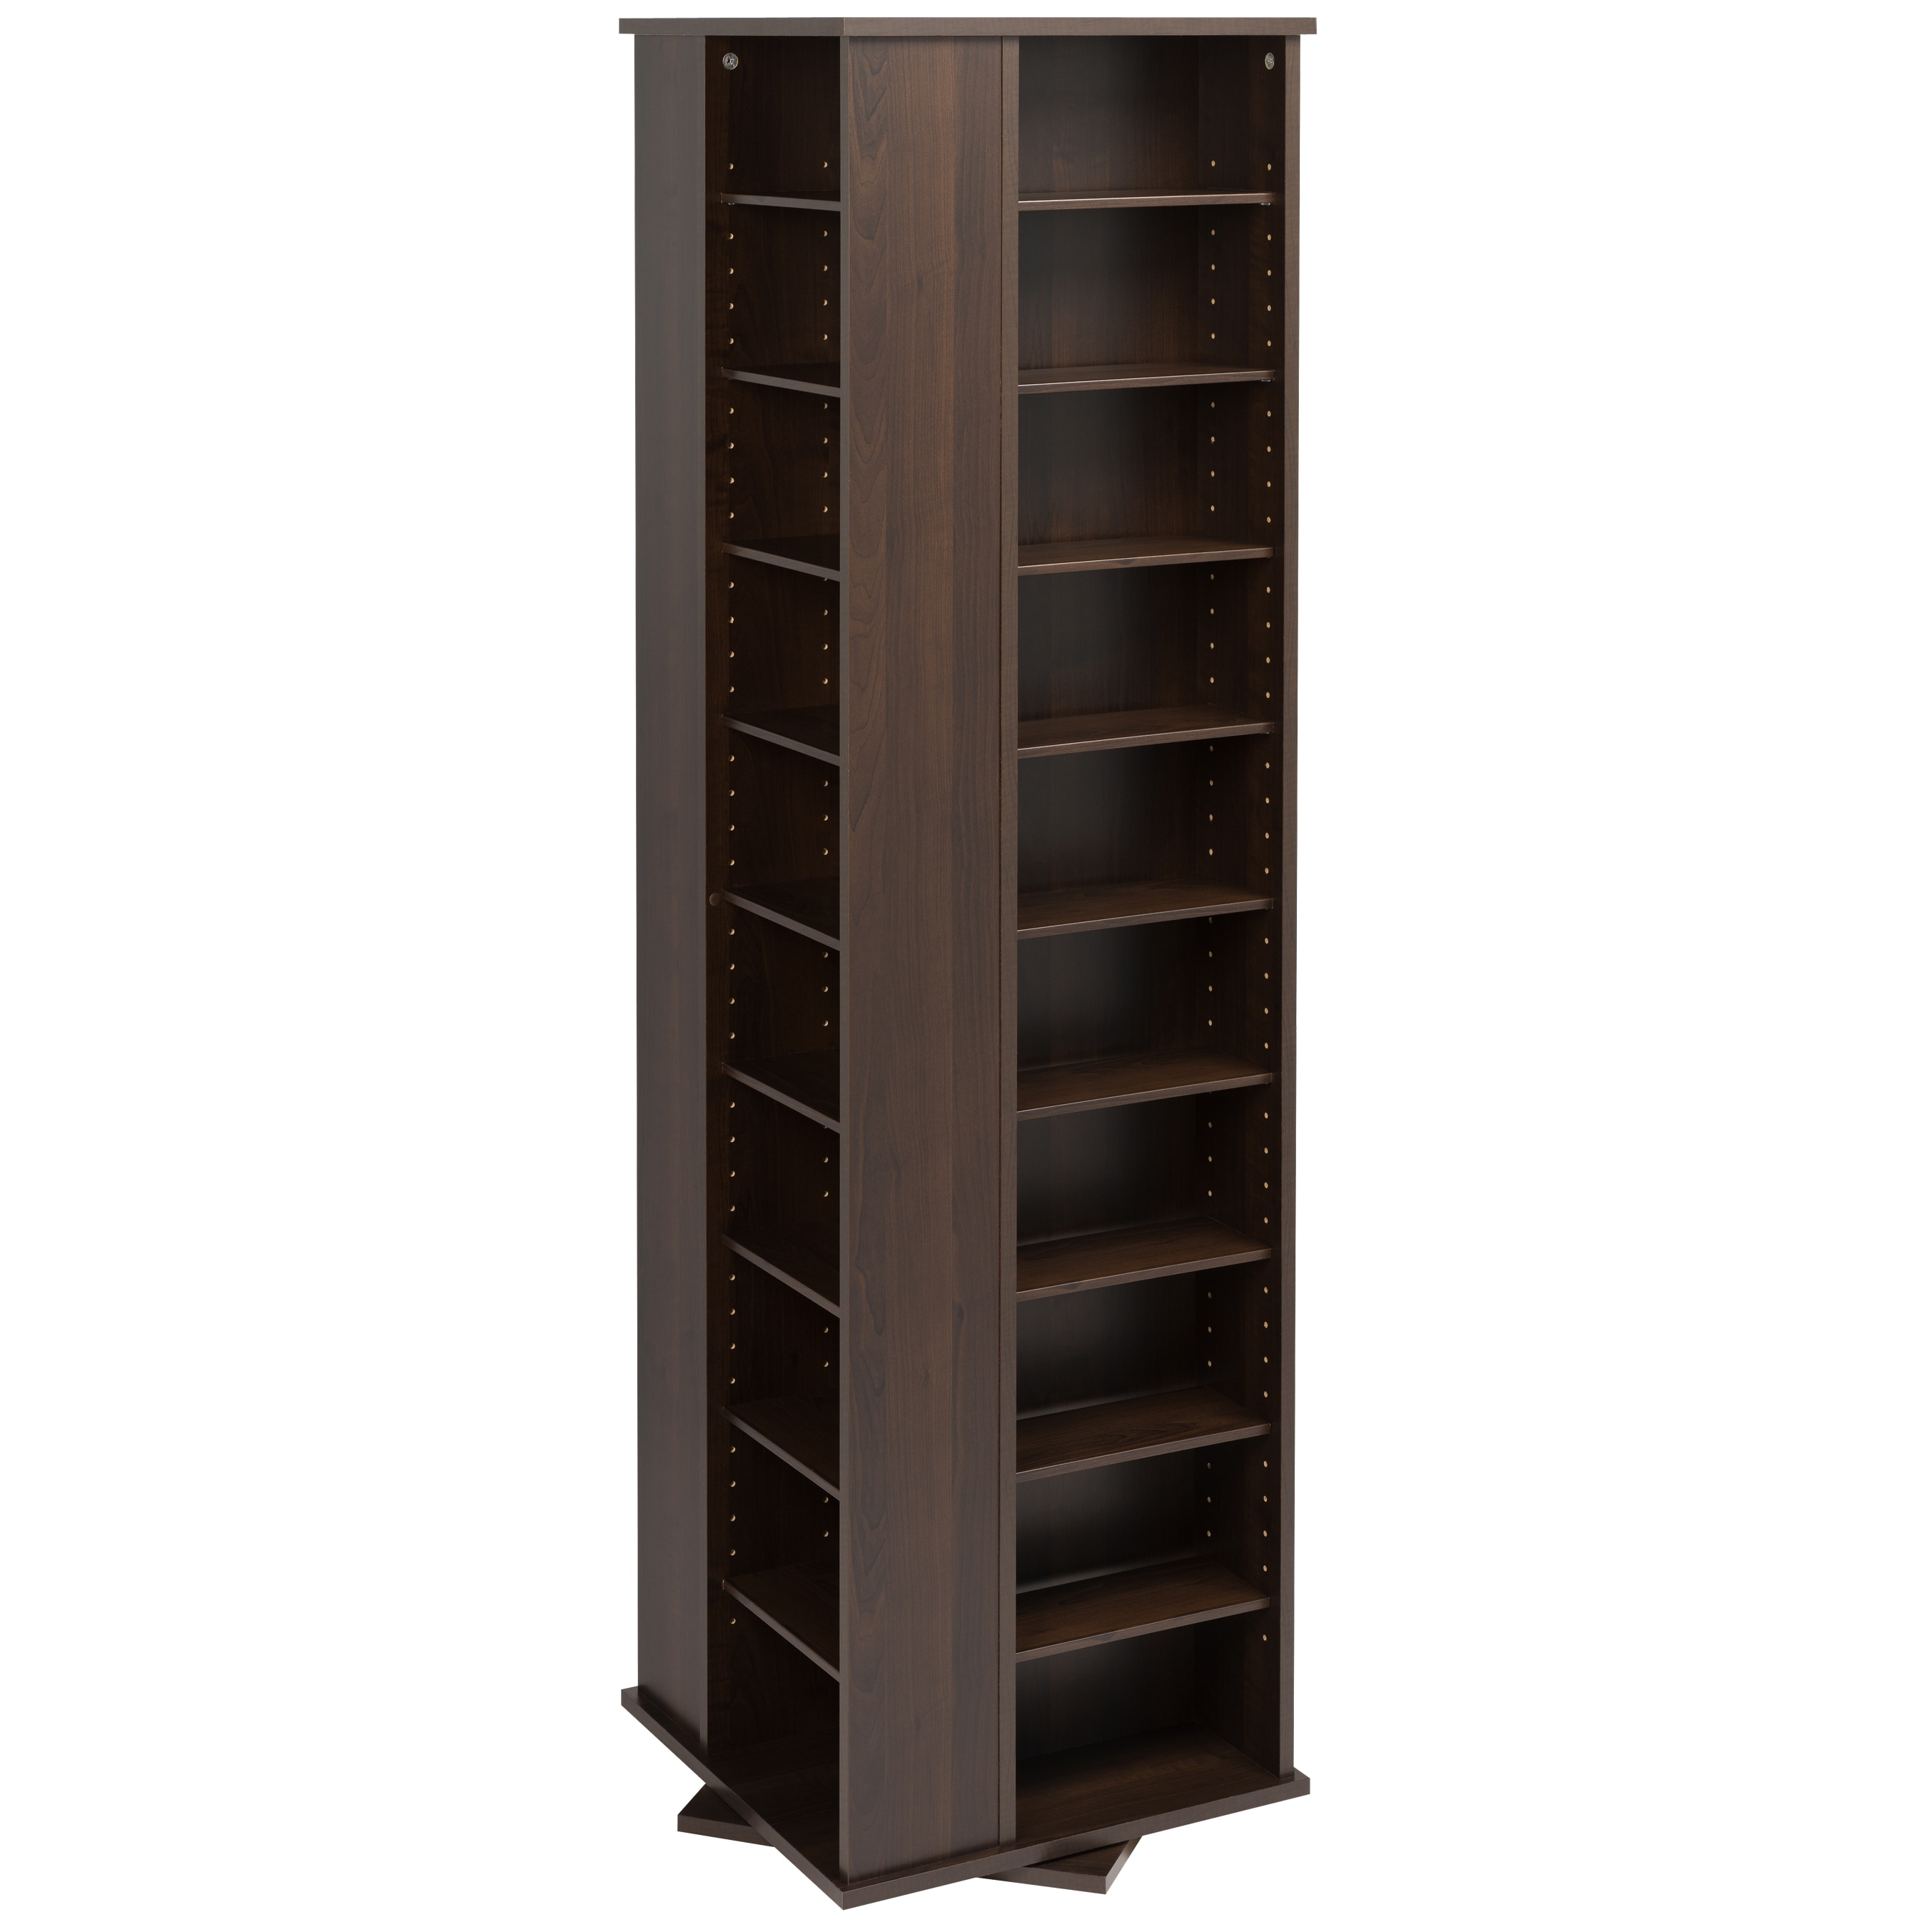 Prepac Everett Espresso 4-sided Spinner Media Storage Cabinet at Sears.com